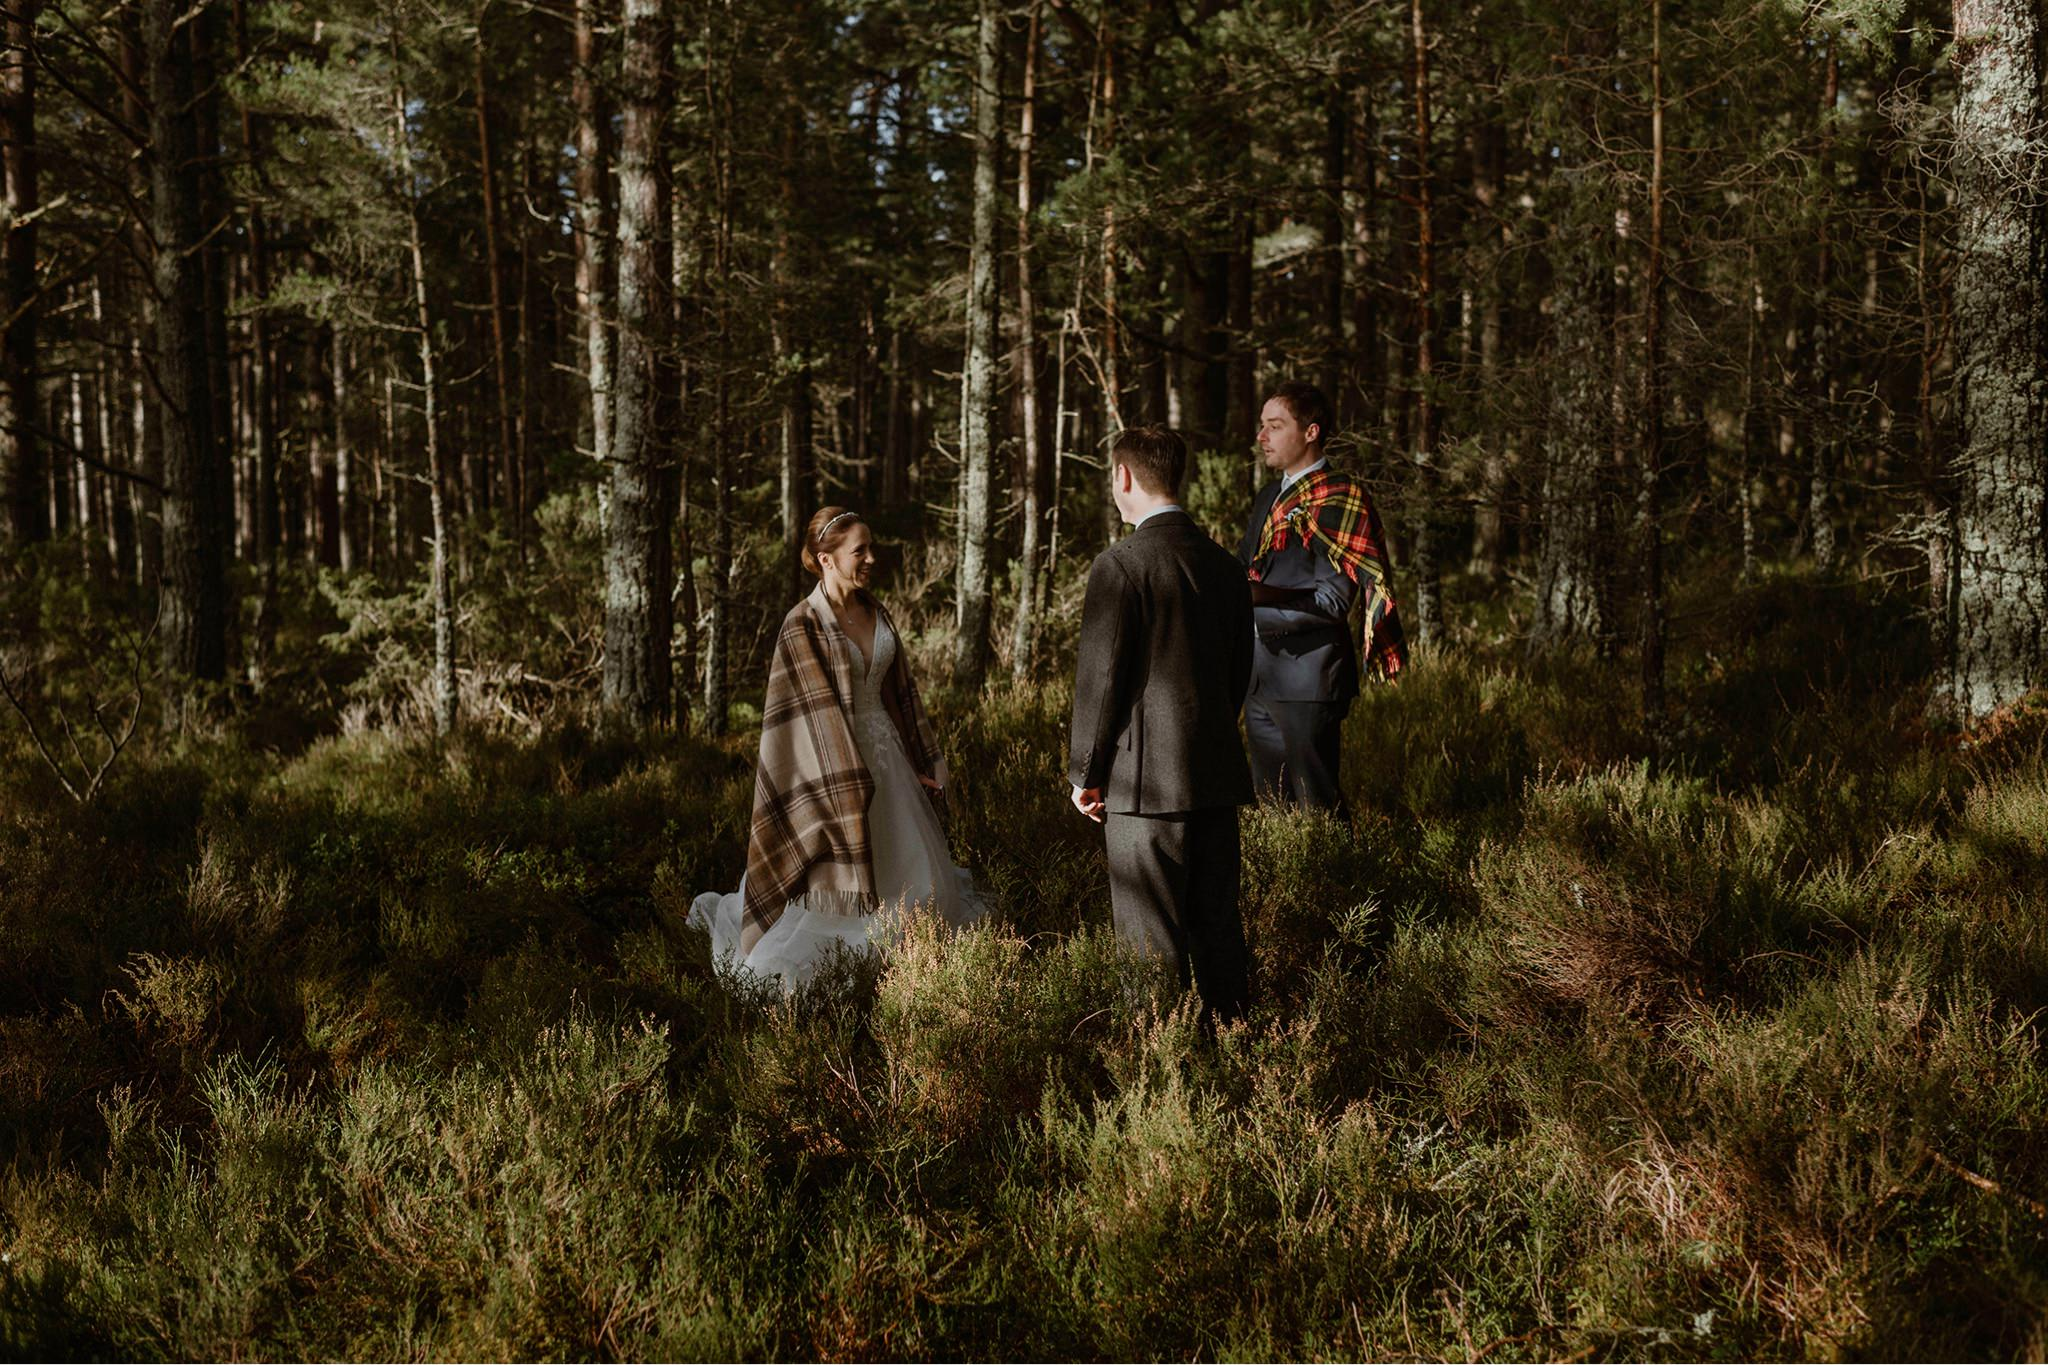 Elopement location in the Rothiemurchus forest Highlands Scotland